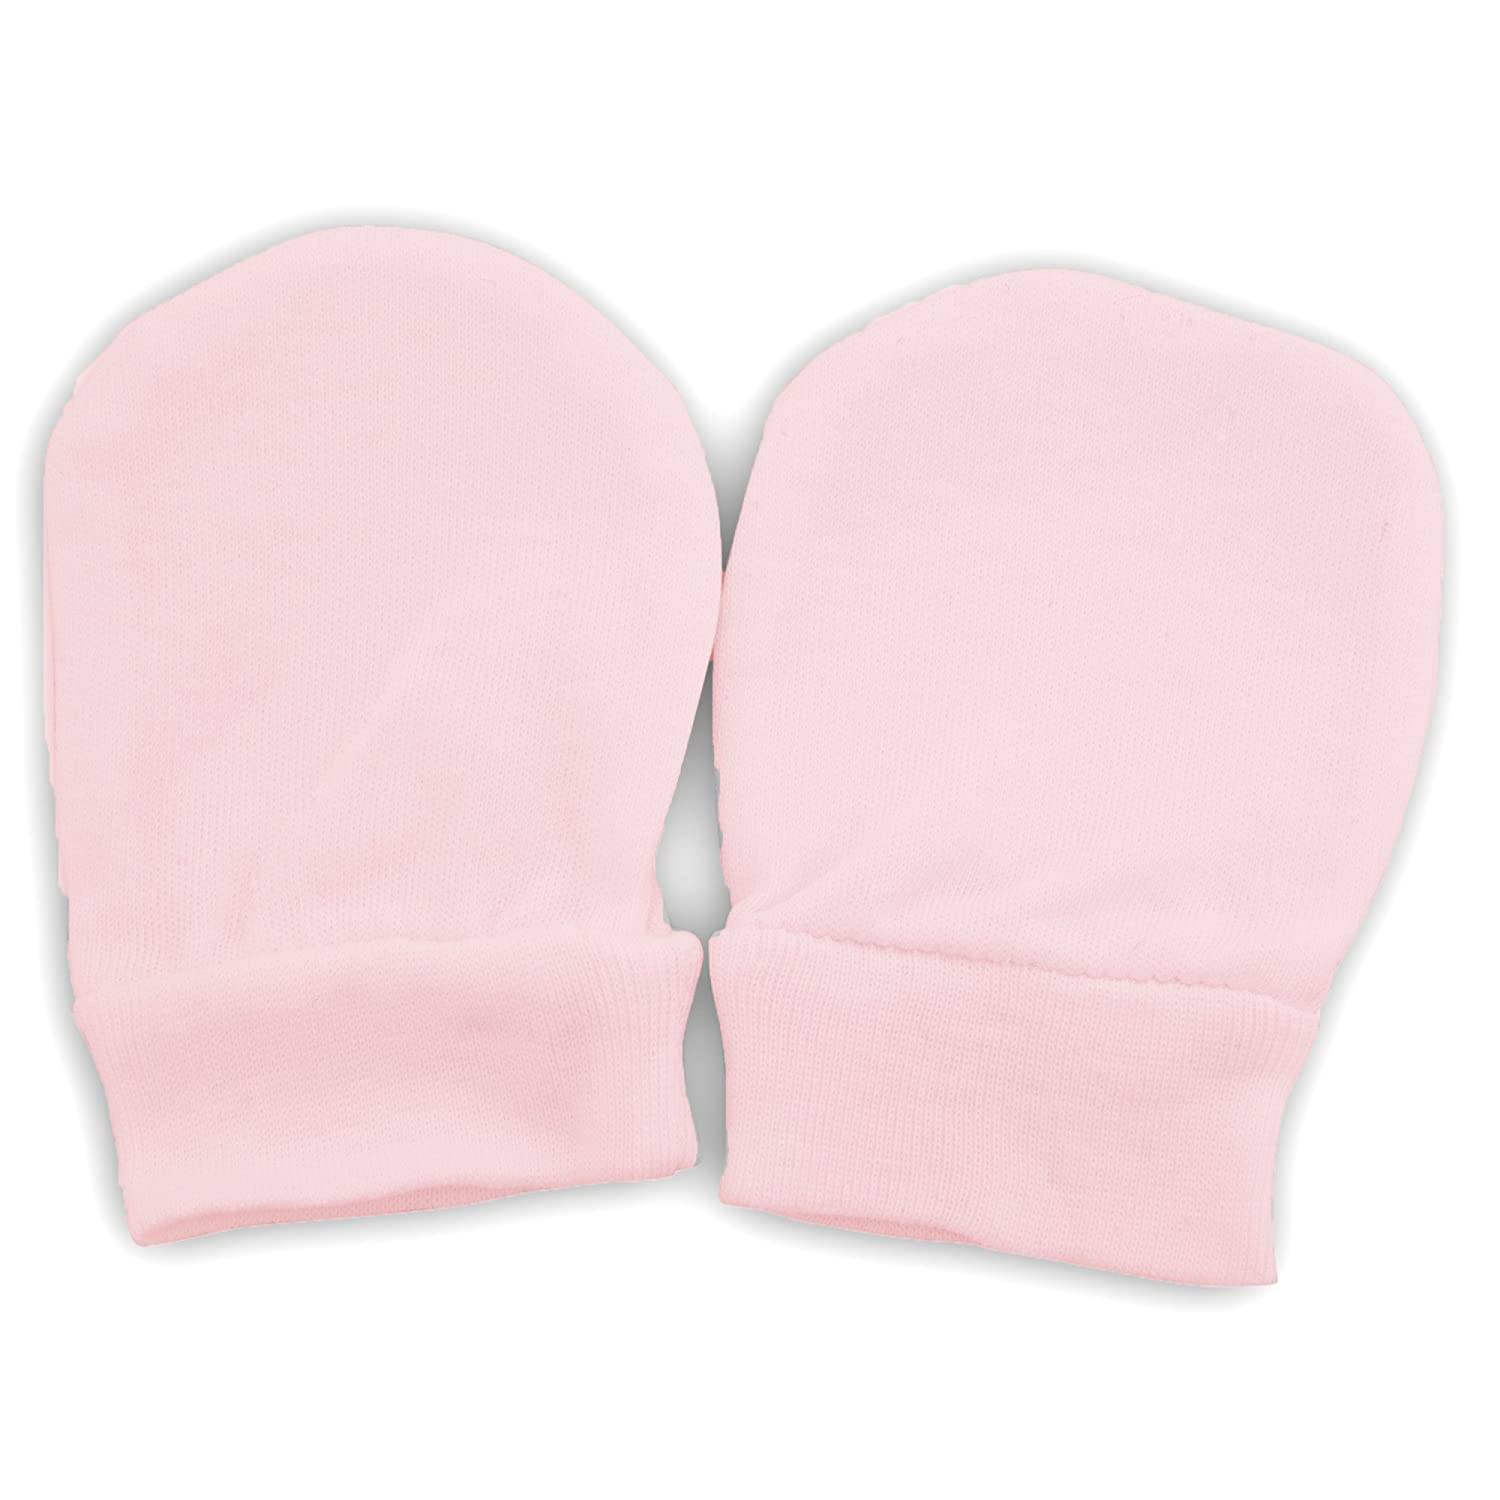 Baby New Born Scratch Mittens (Pack Of 2 Pairs)